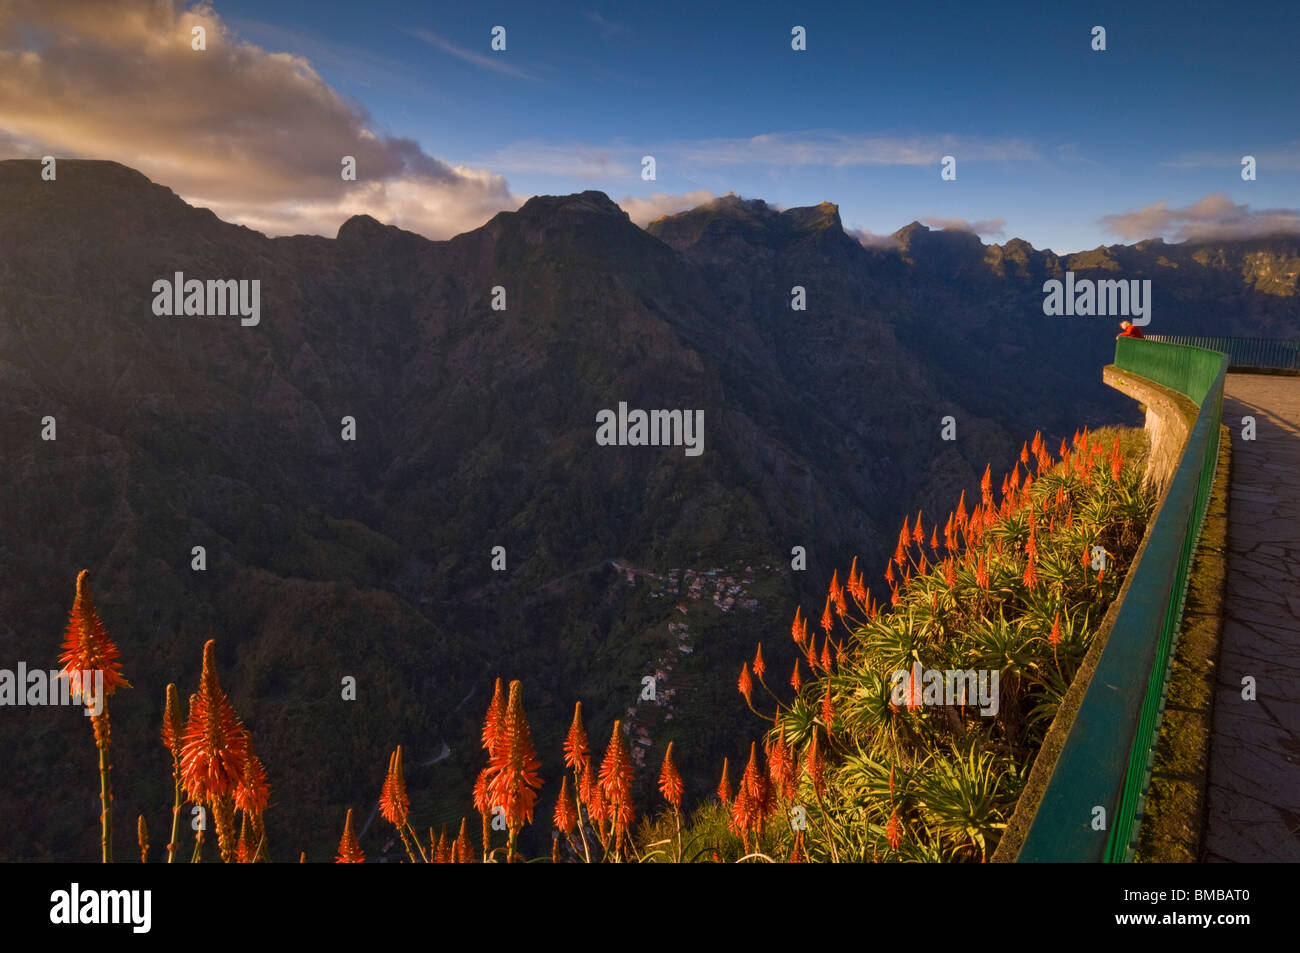 Eira do Serrado viewpoint sunset madeira portugal eu europe - Stock Image